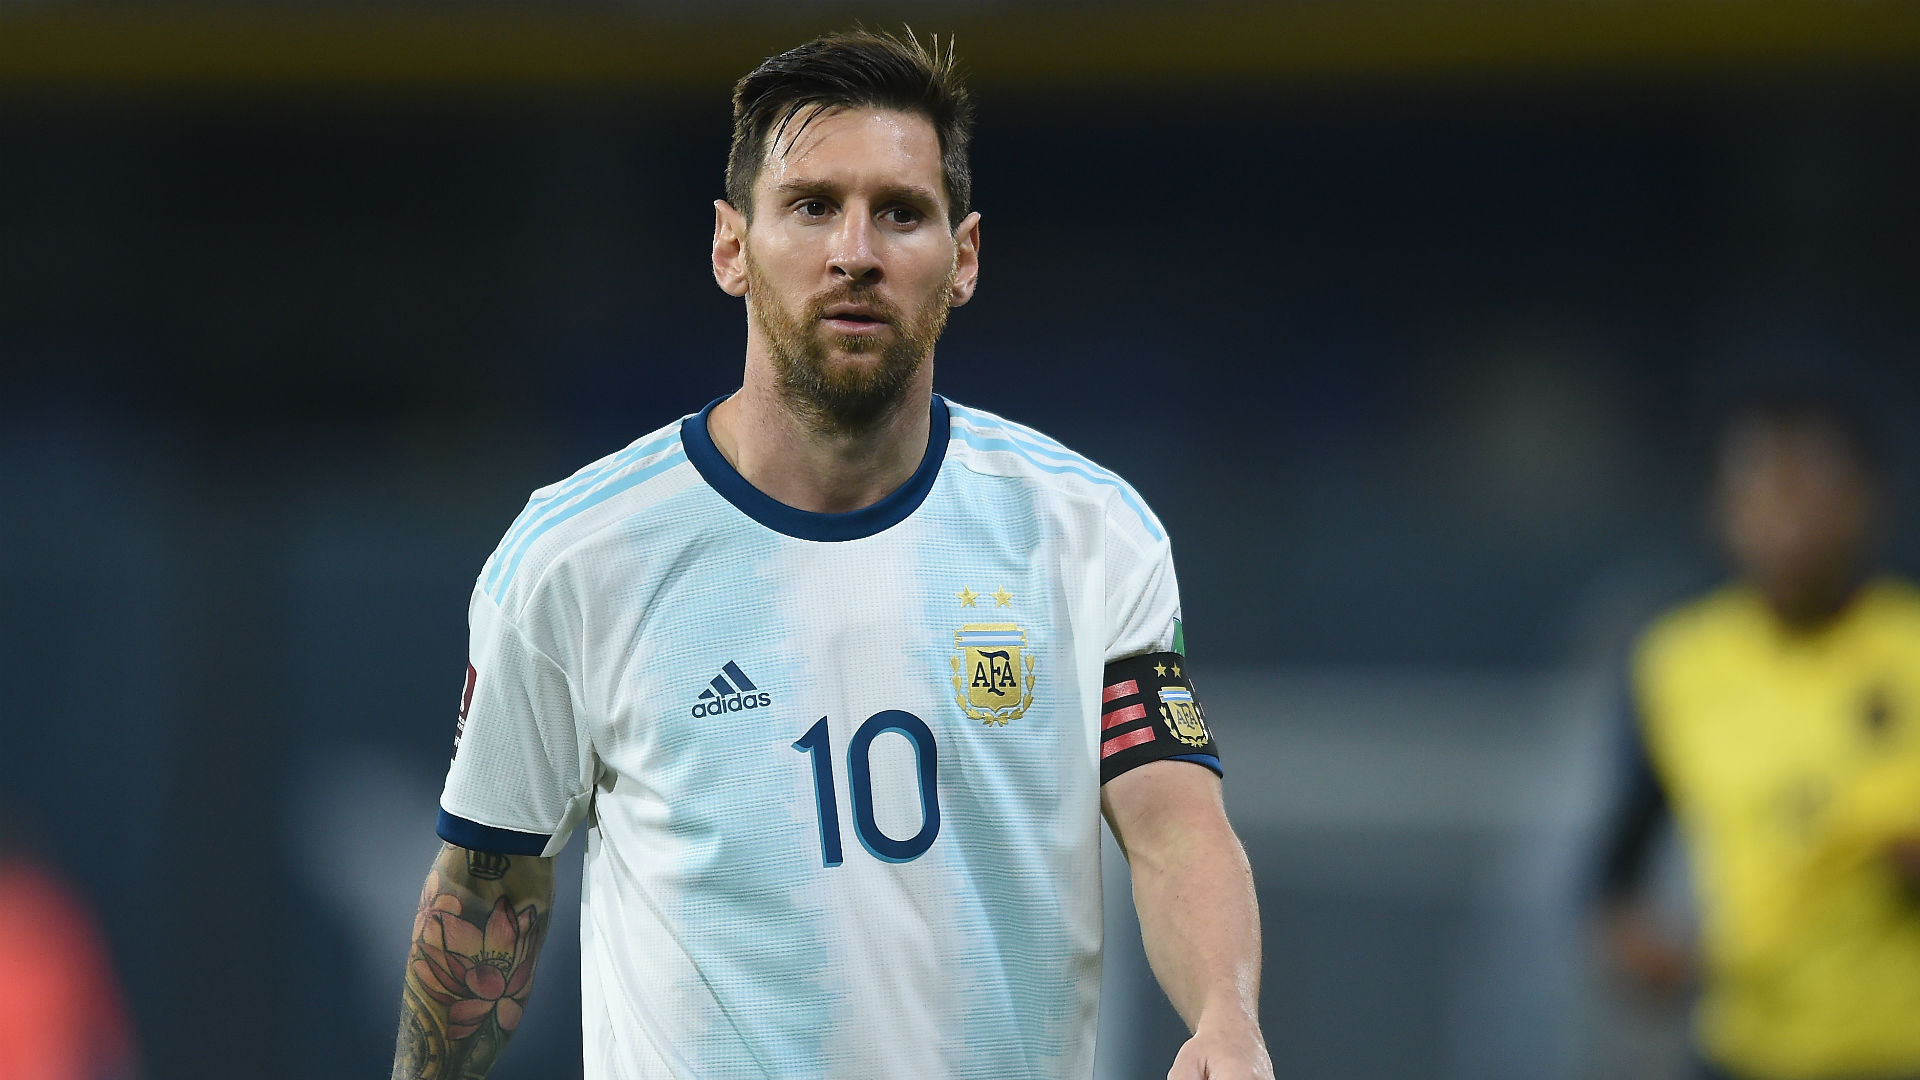 Messi fit for Argentina's World Cup qualifiers despite ankle issue - Scaloni